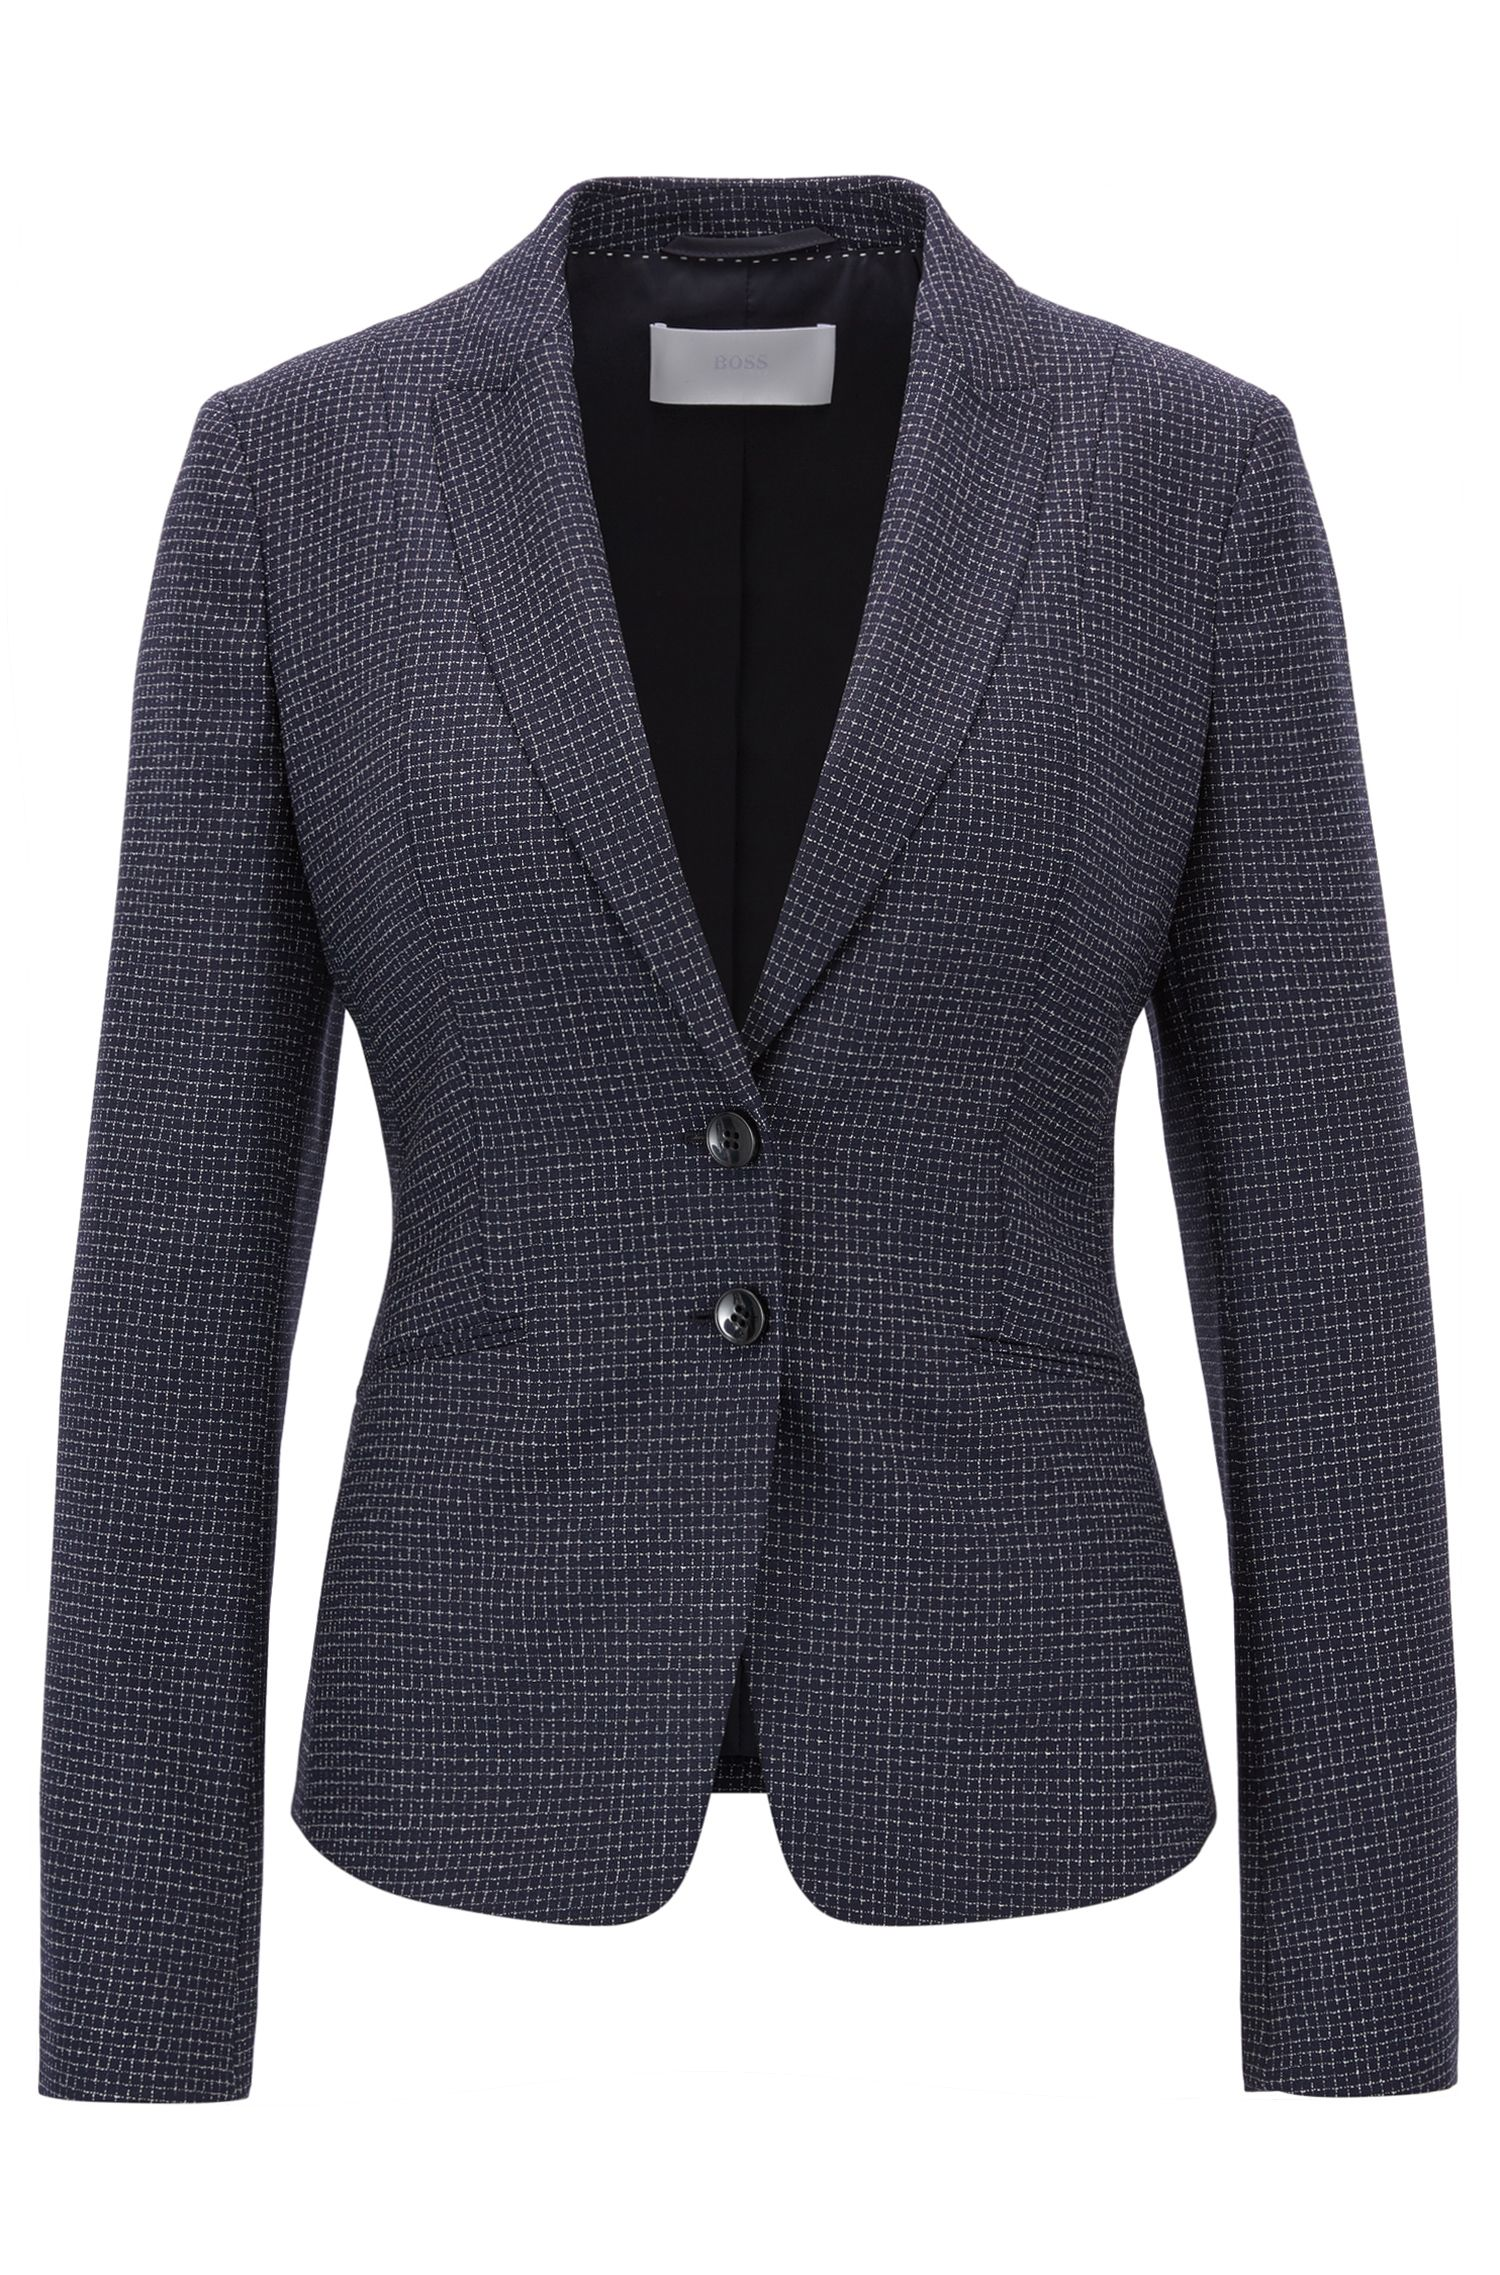 Metallic Virgin Wool Blazer | Jibena, Patterned